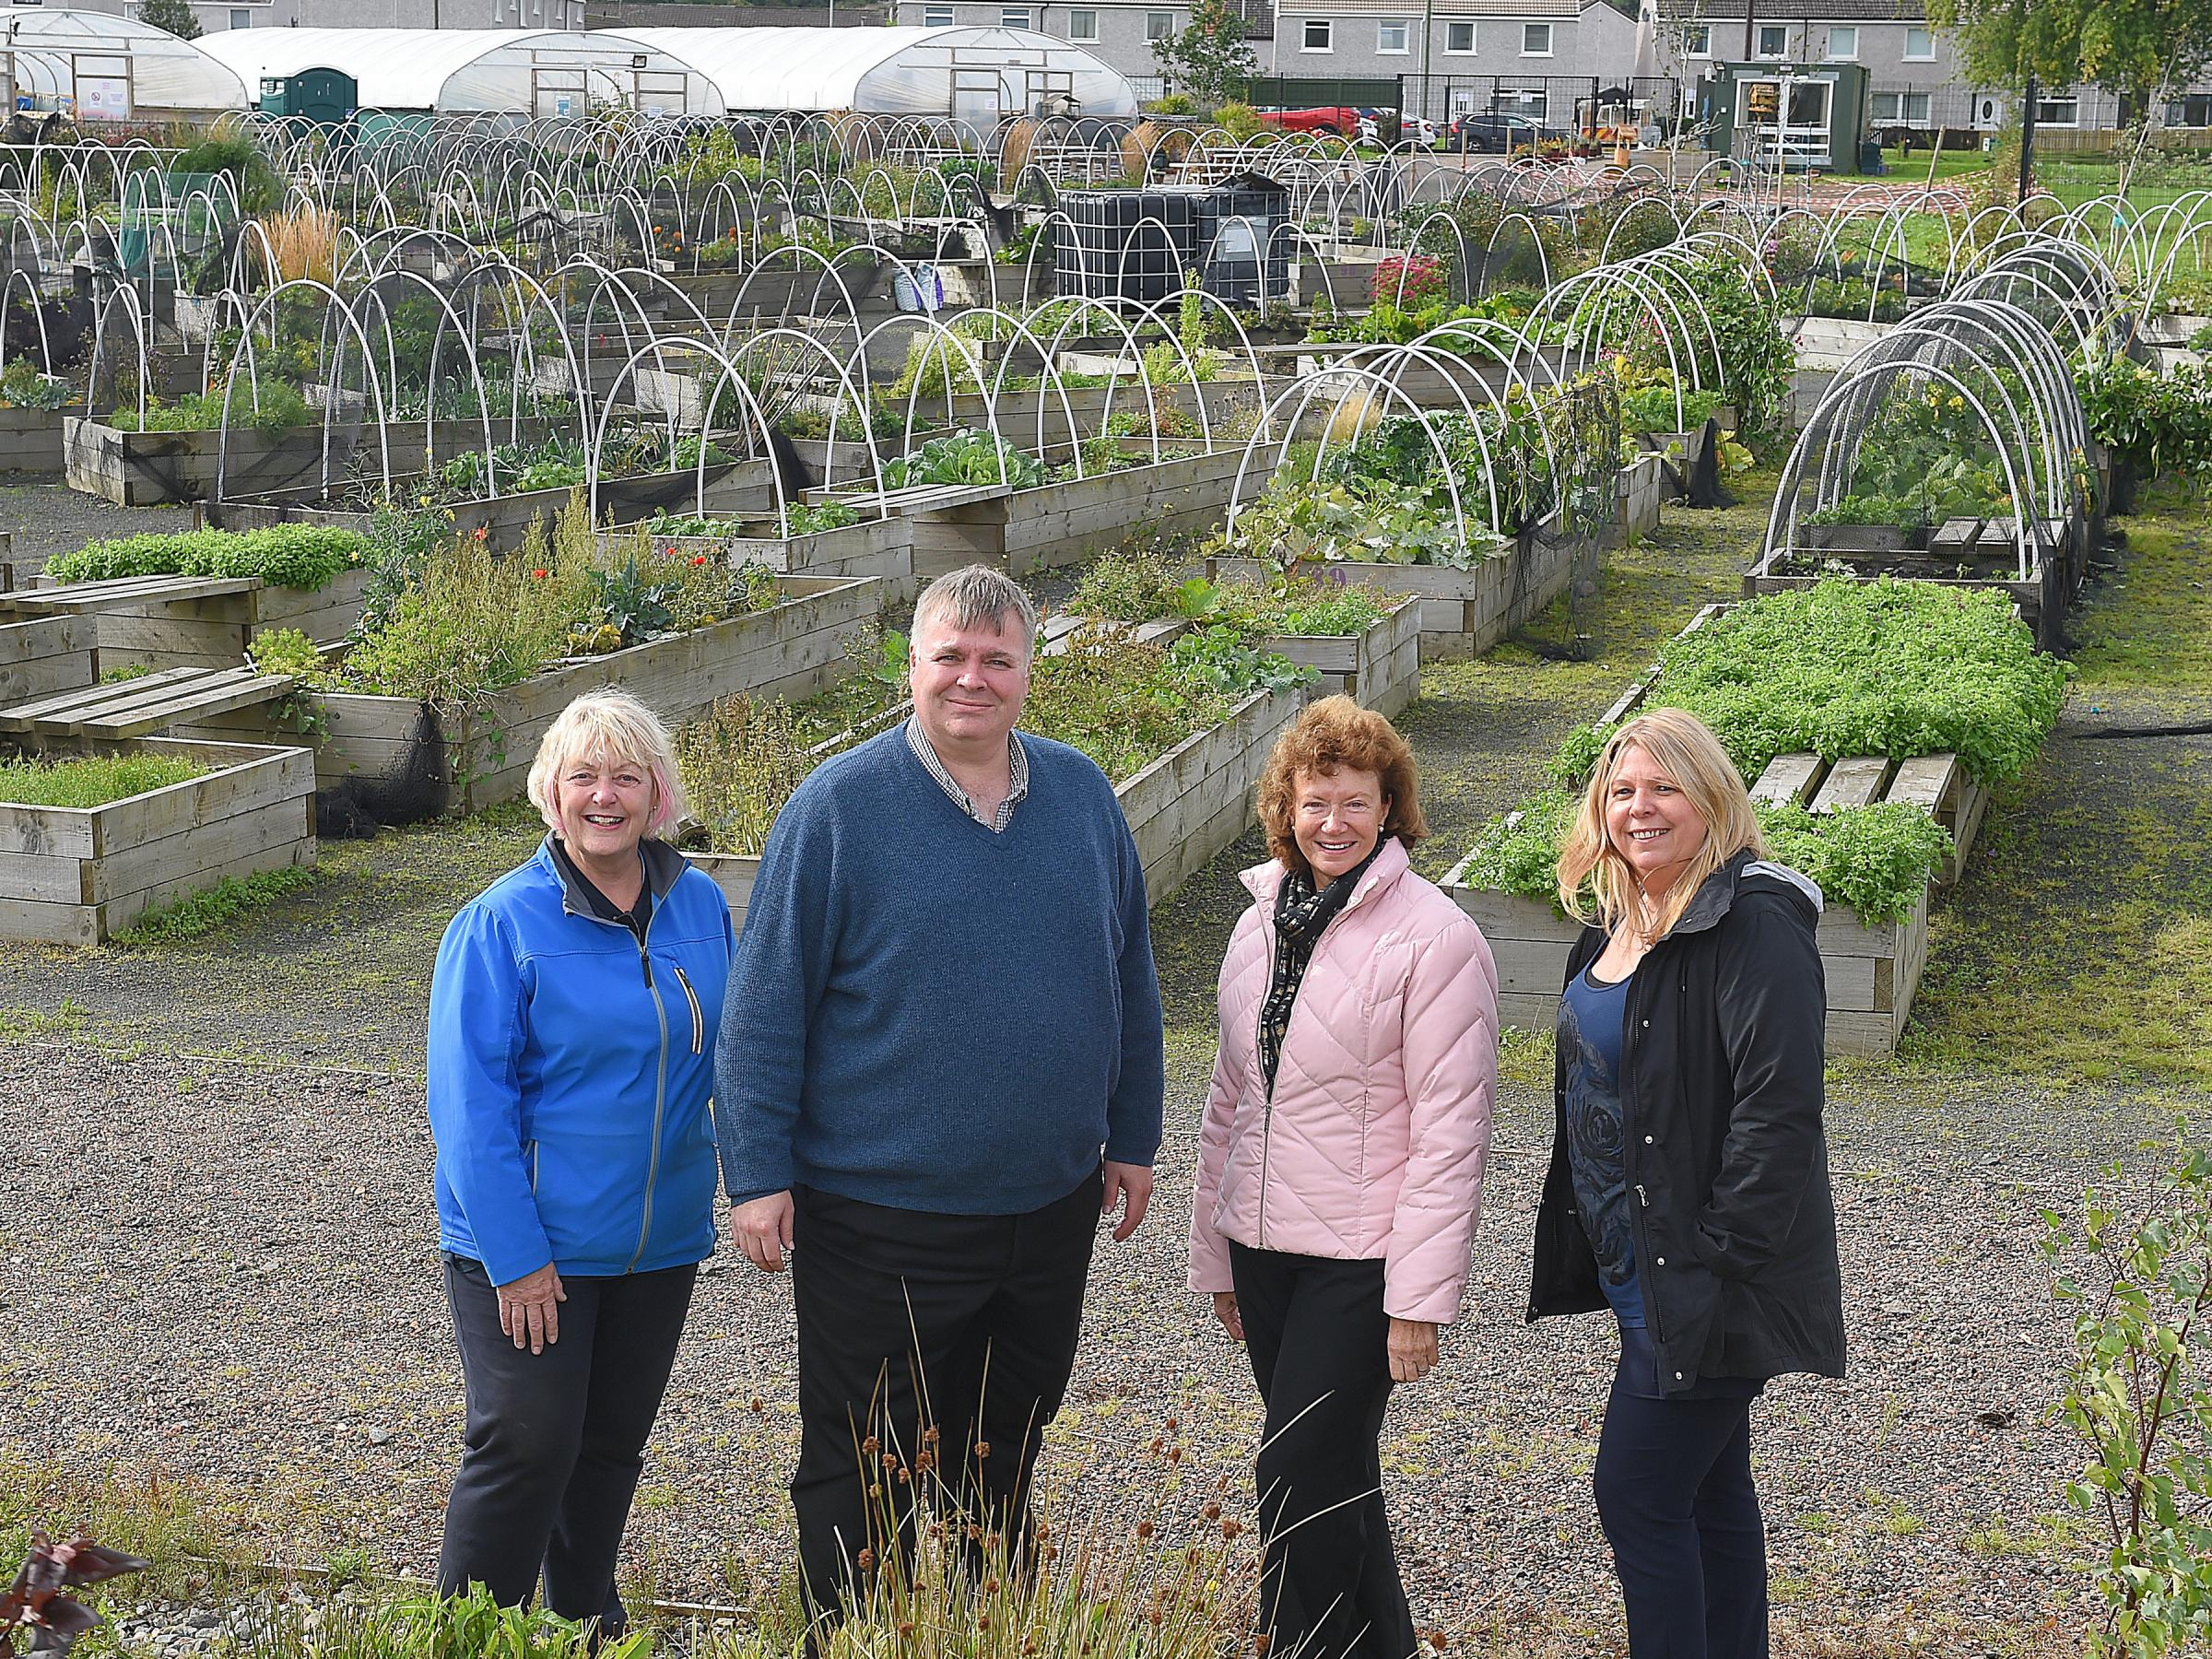 Community success: Braehead Community Garden opened in 2015 following a successful drive by the community council